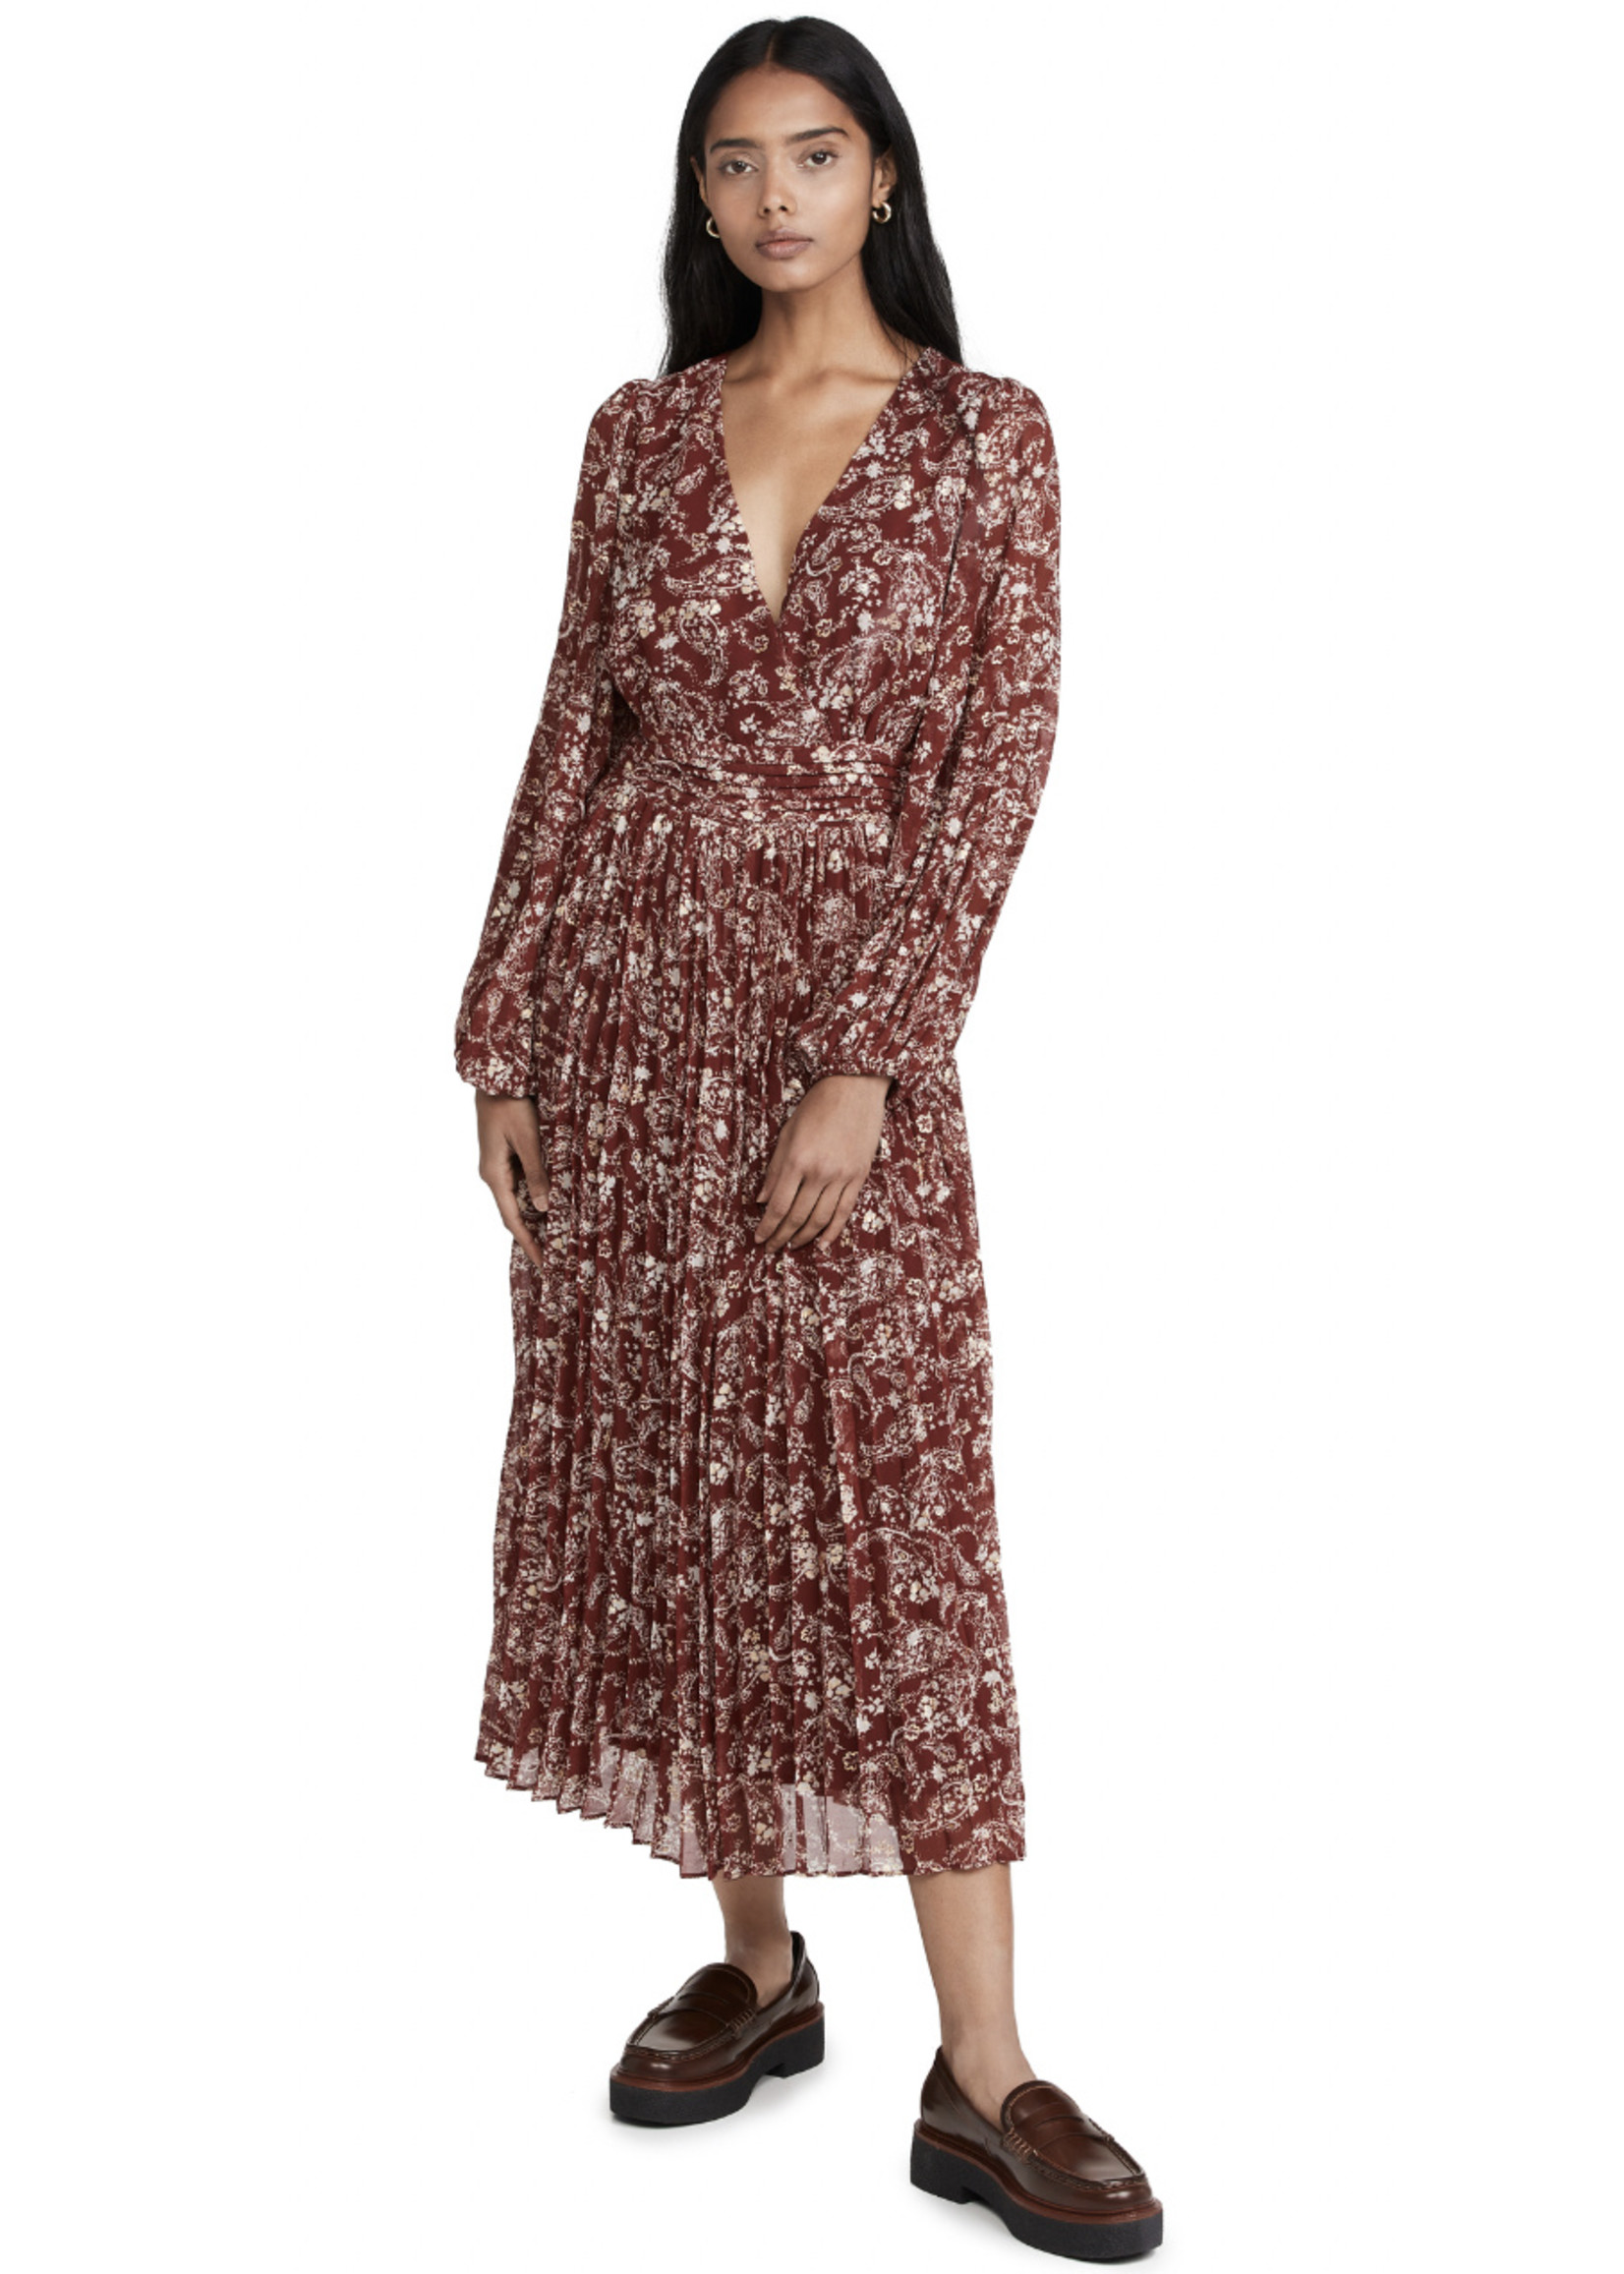 Elitaire Boutique Paisley Printed Dress in Rust